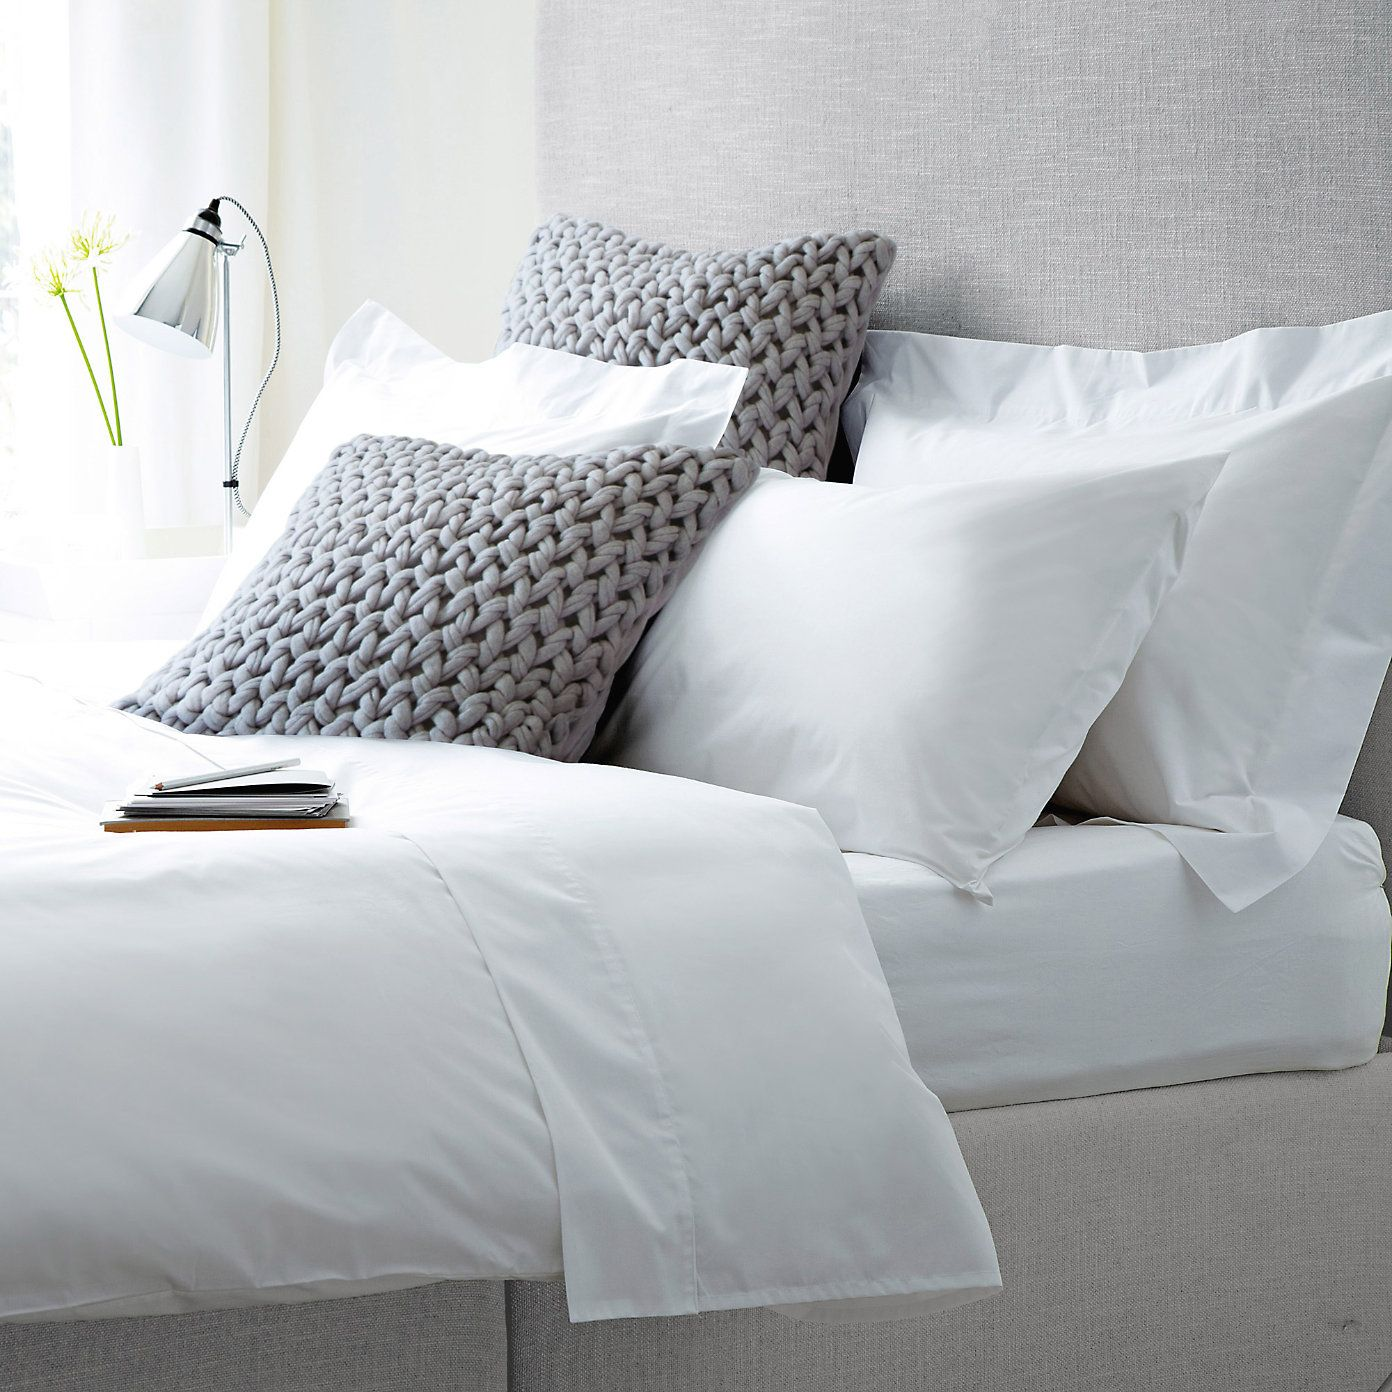 Cotton Bed Linen From The White Company Home Home Bedroom